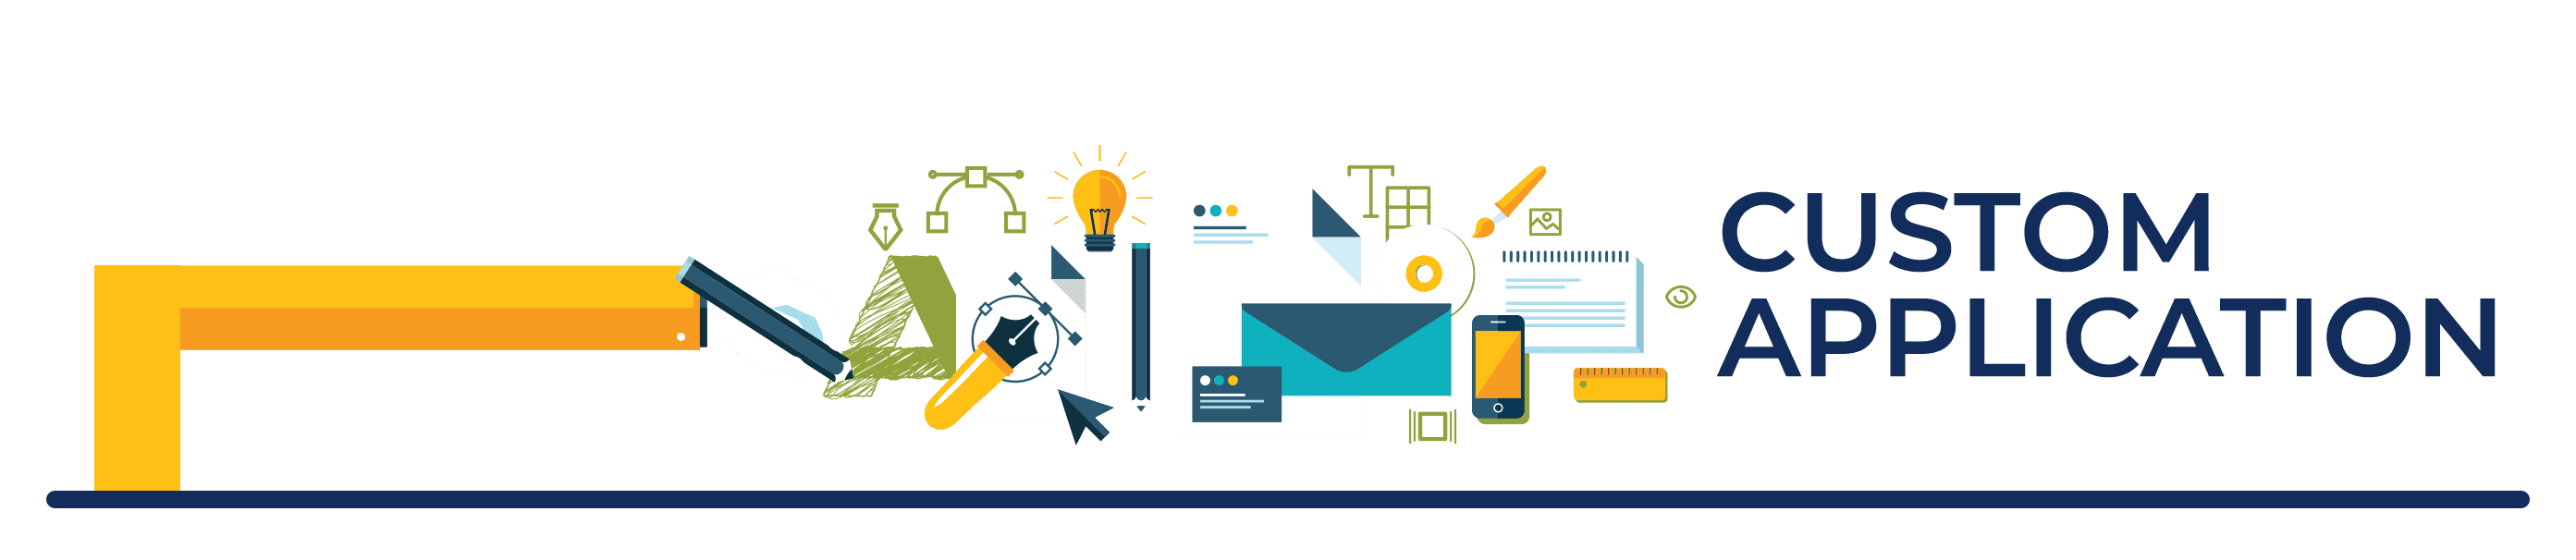 The cost of a website custom application banner